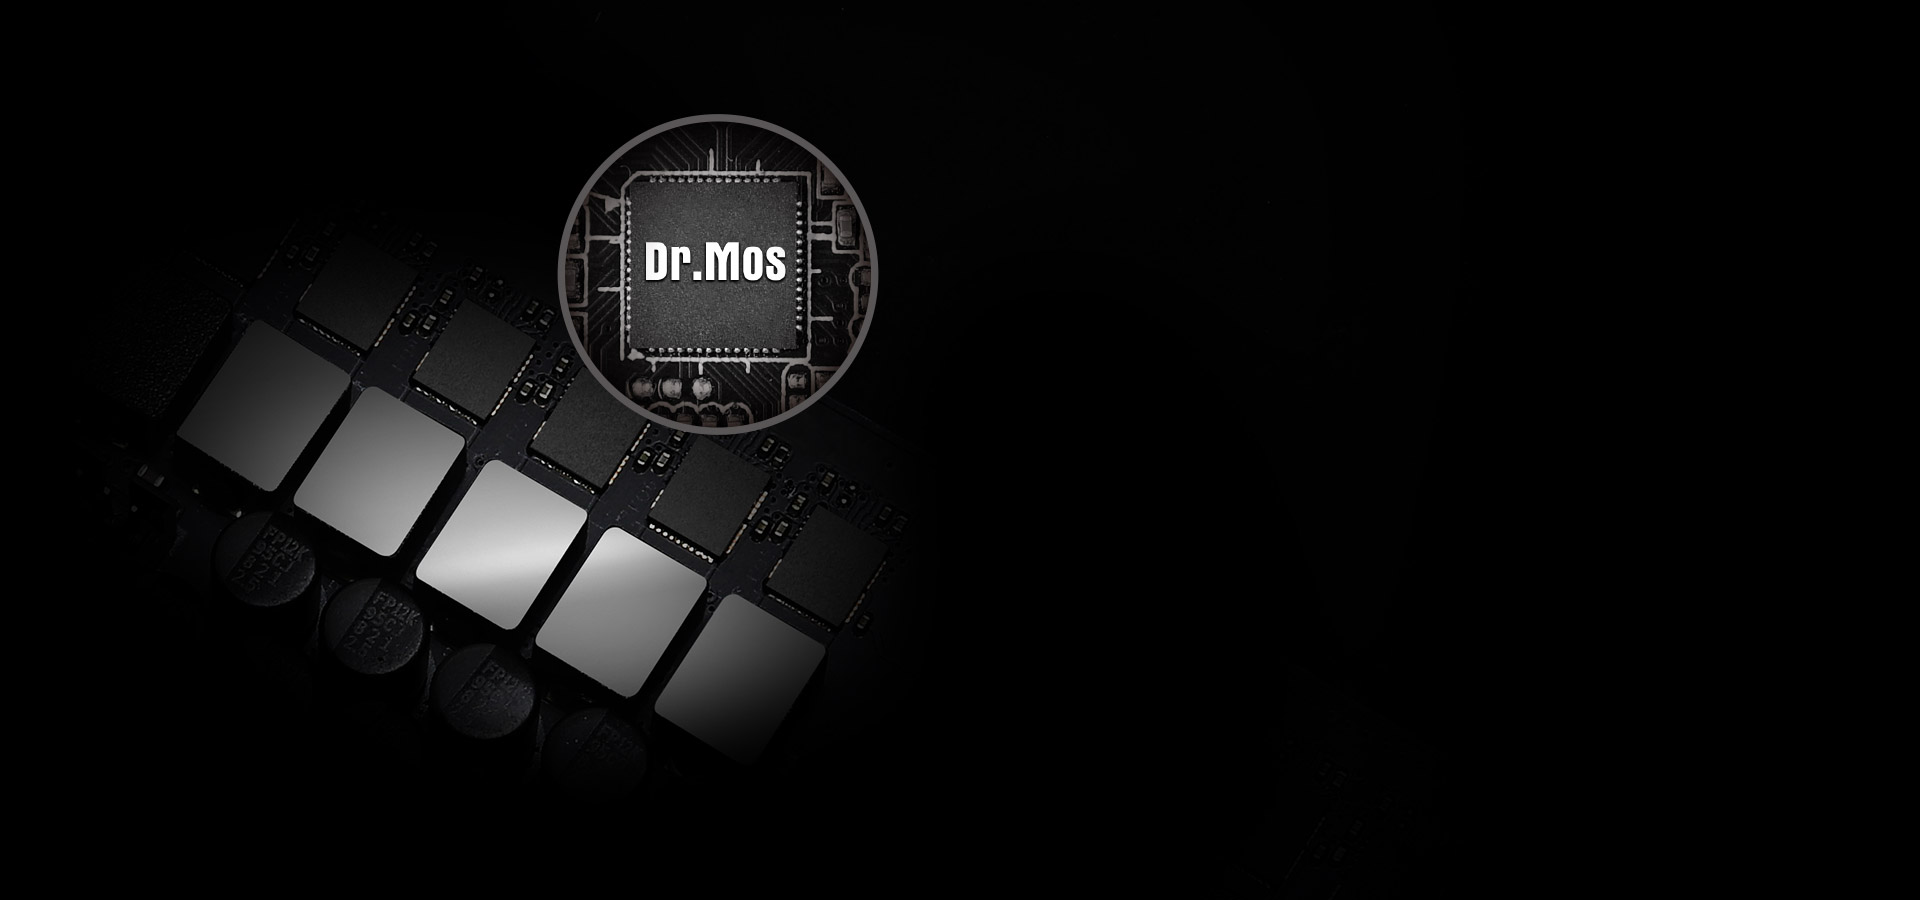 DrMOS-B550 of the motherboard